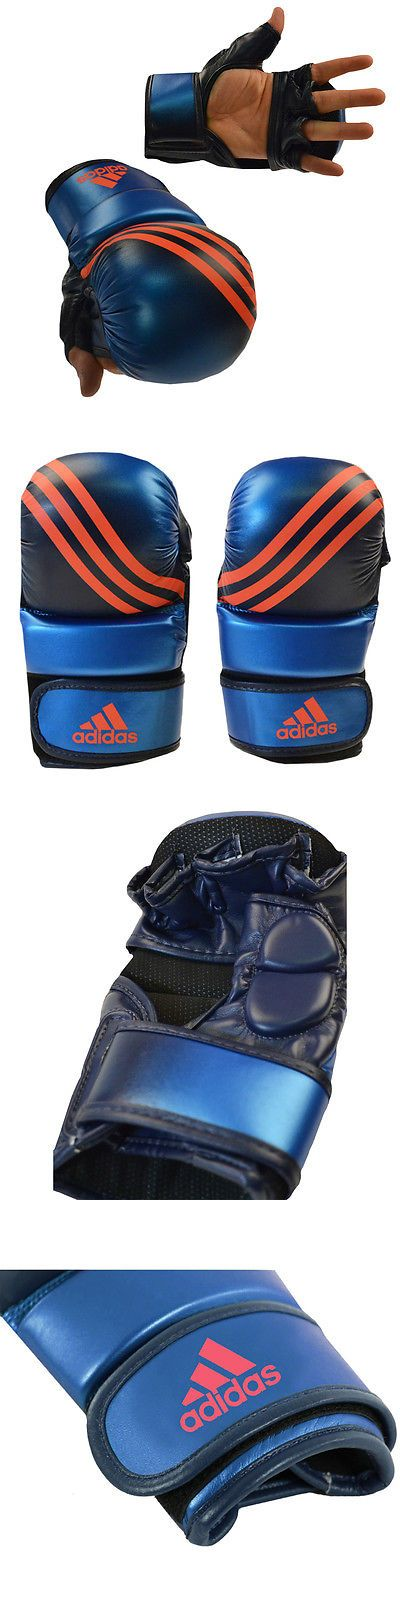 Gloves - Martial Arts 97042: Adidas Speed Mma Sparring Gloves - Metallic Blue Collegiate Navy -> BUY IT NOW ONLY: $89.1 on eBay!